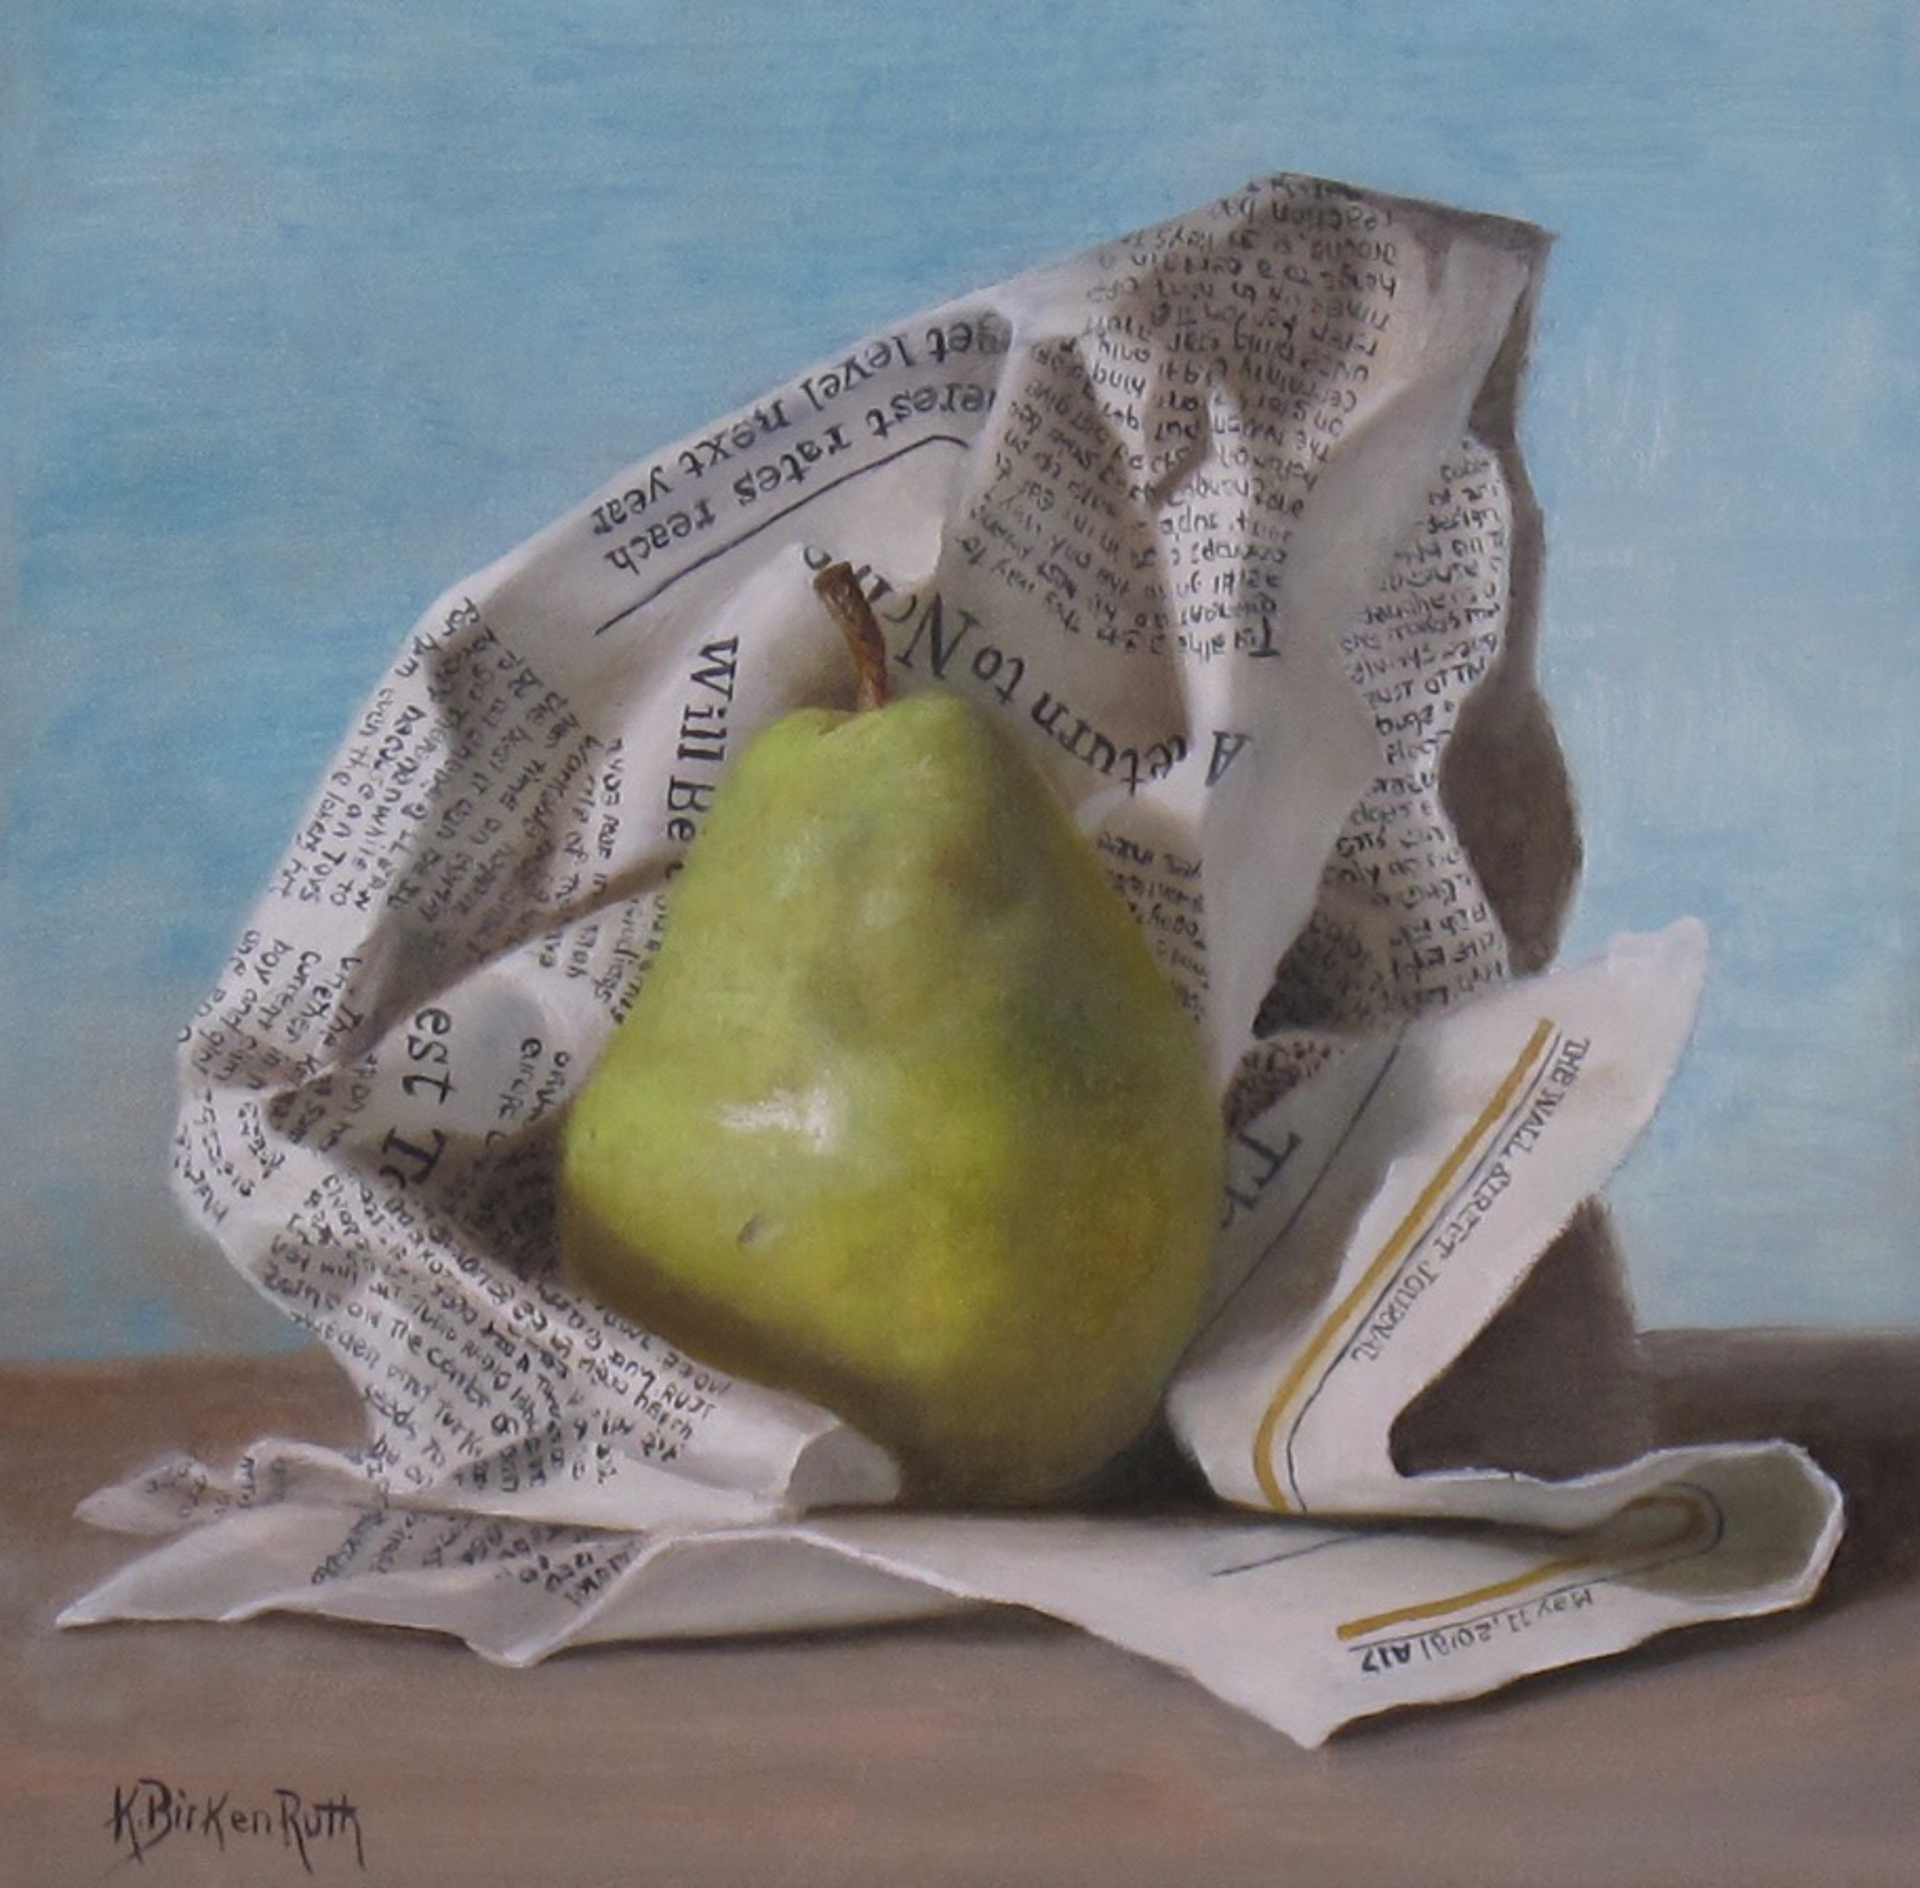 Wrapped Pear by Kelly Birkenruth